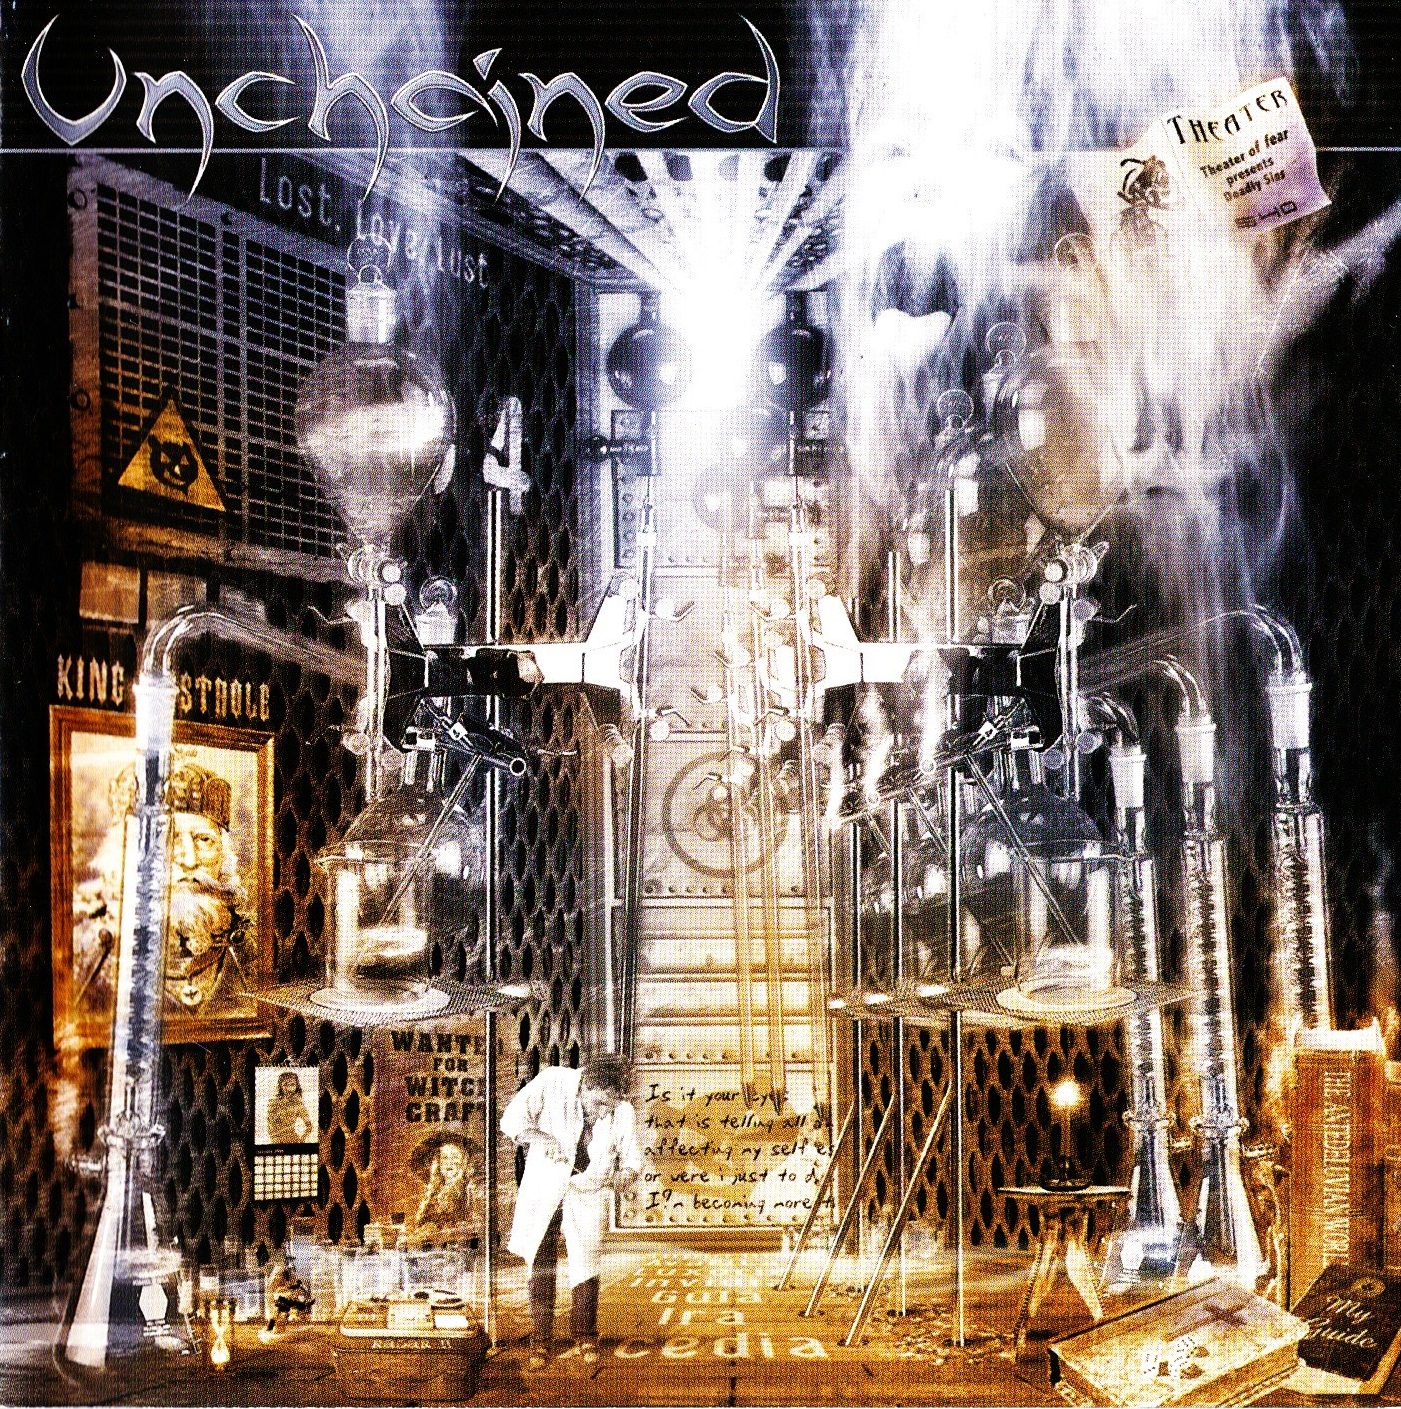 Unchained — Unchained (2005)